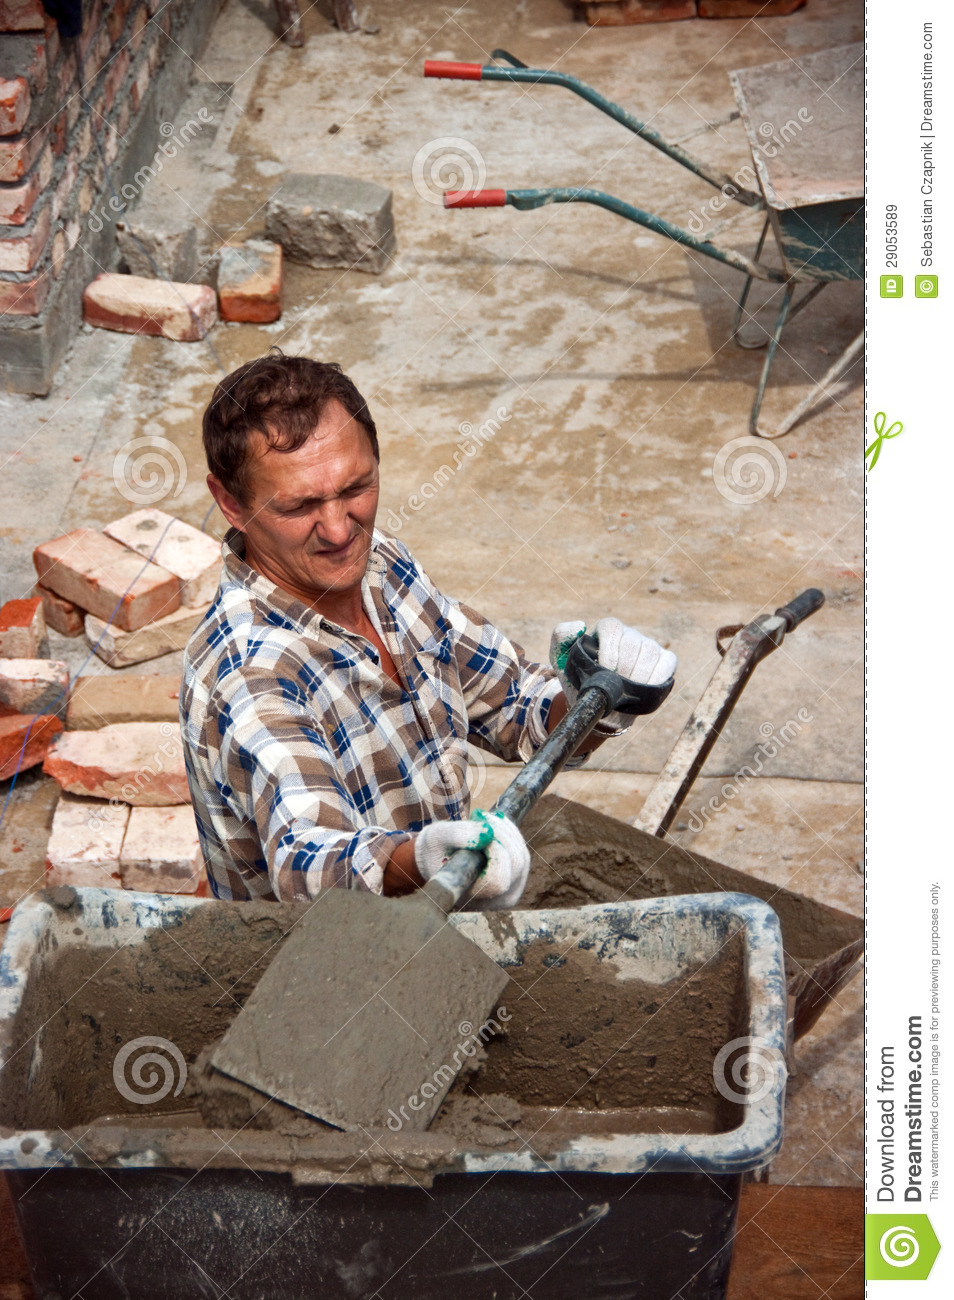 Builder working on site